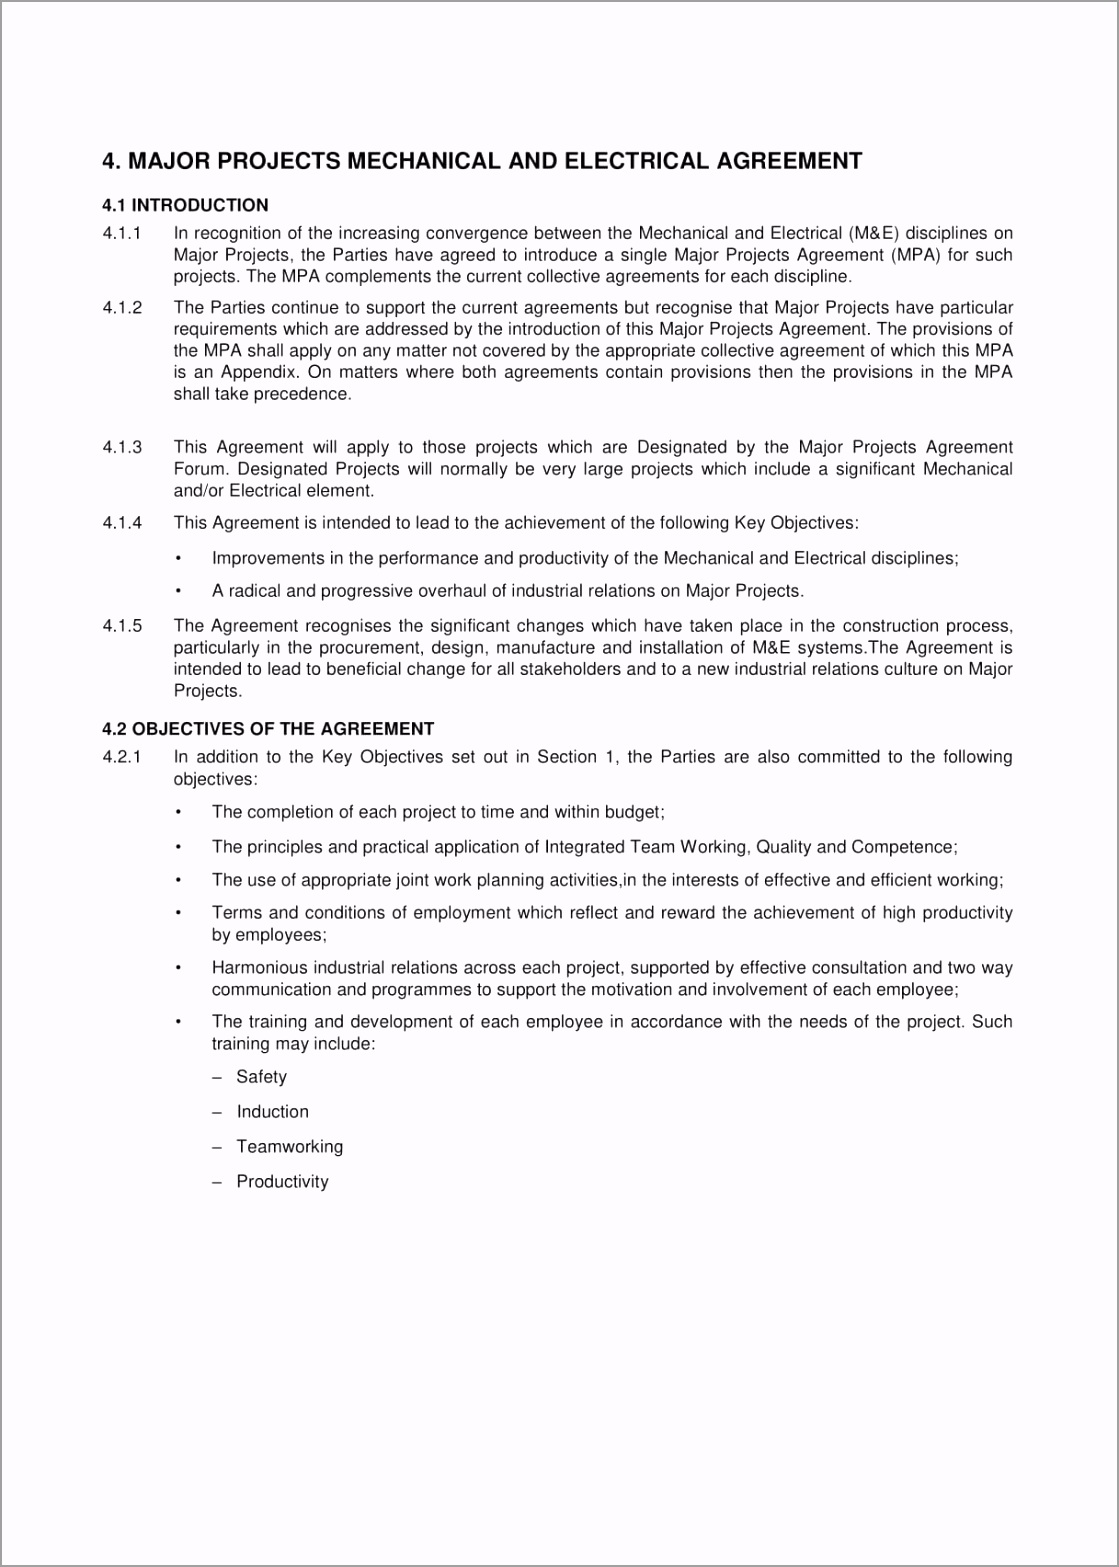 Mechanical and Electrical Agreement Contract For Major Construction Projects Template Example 01 yapaw